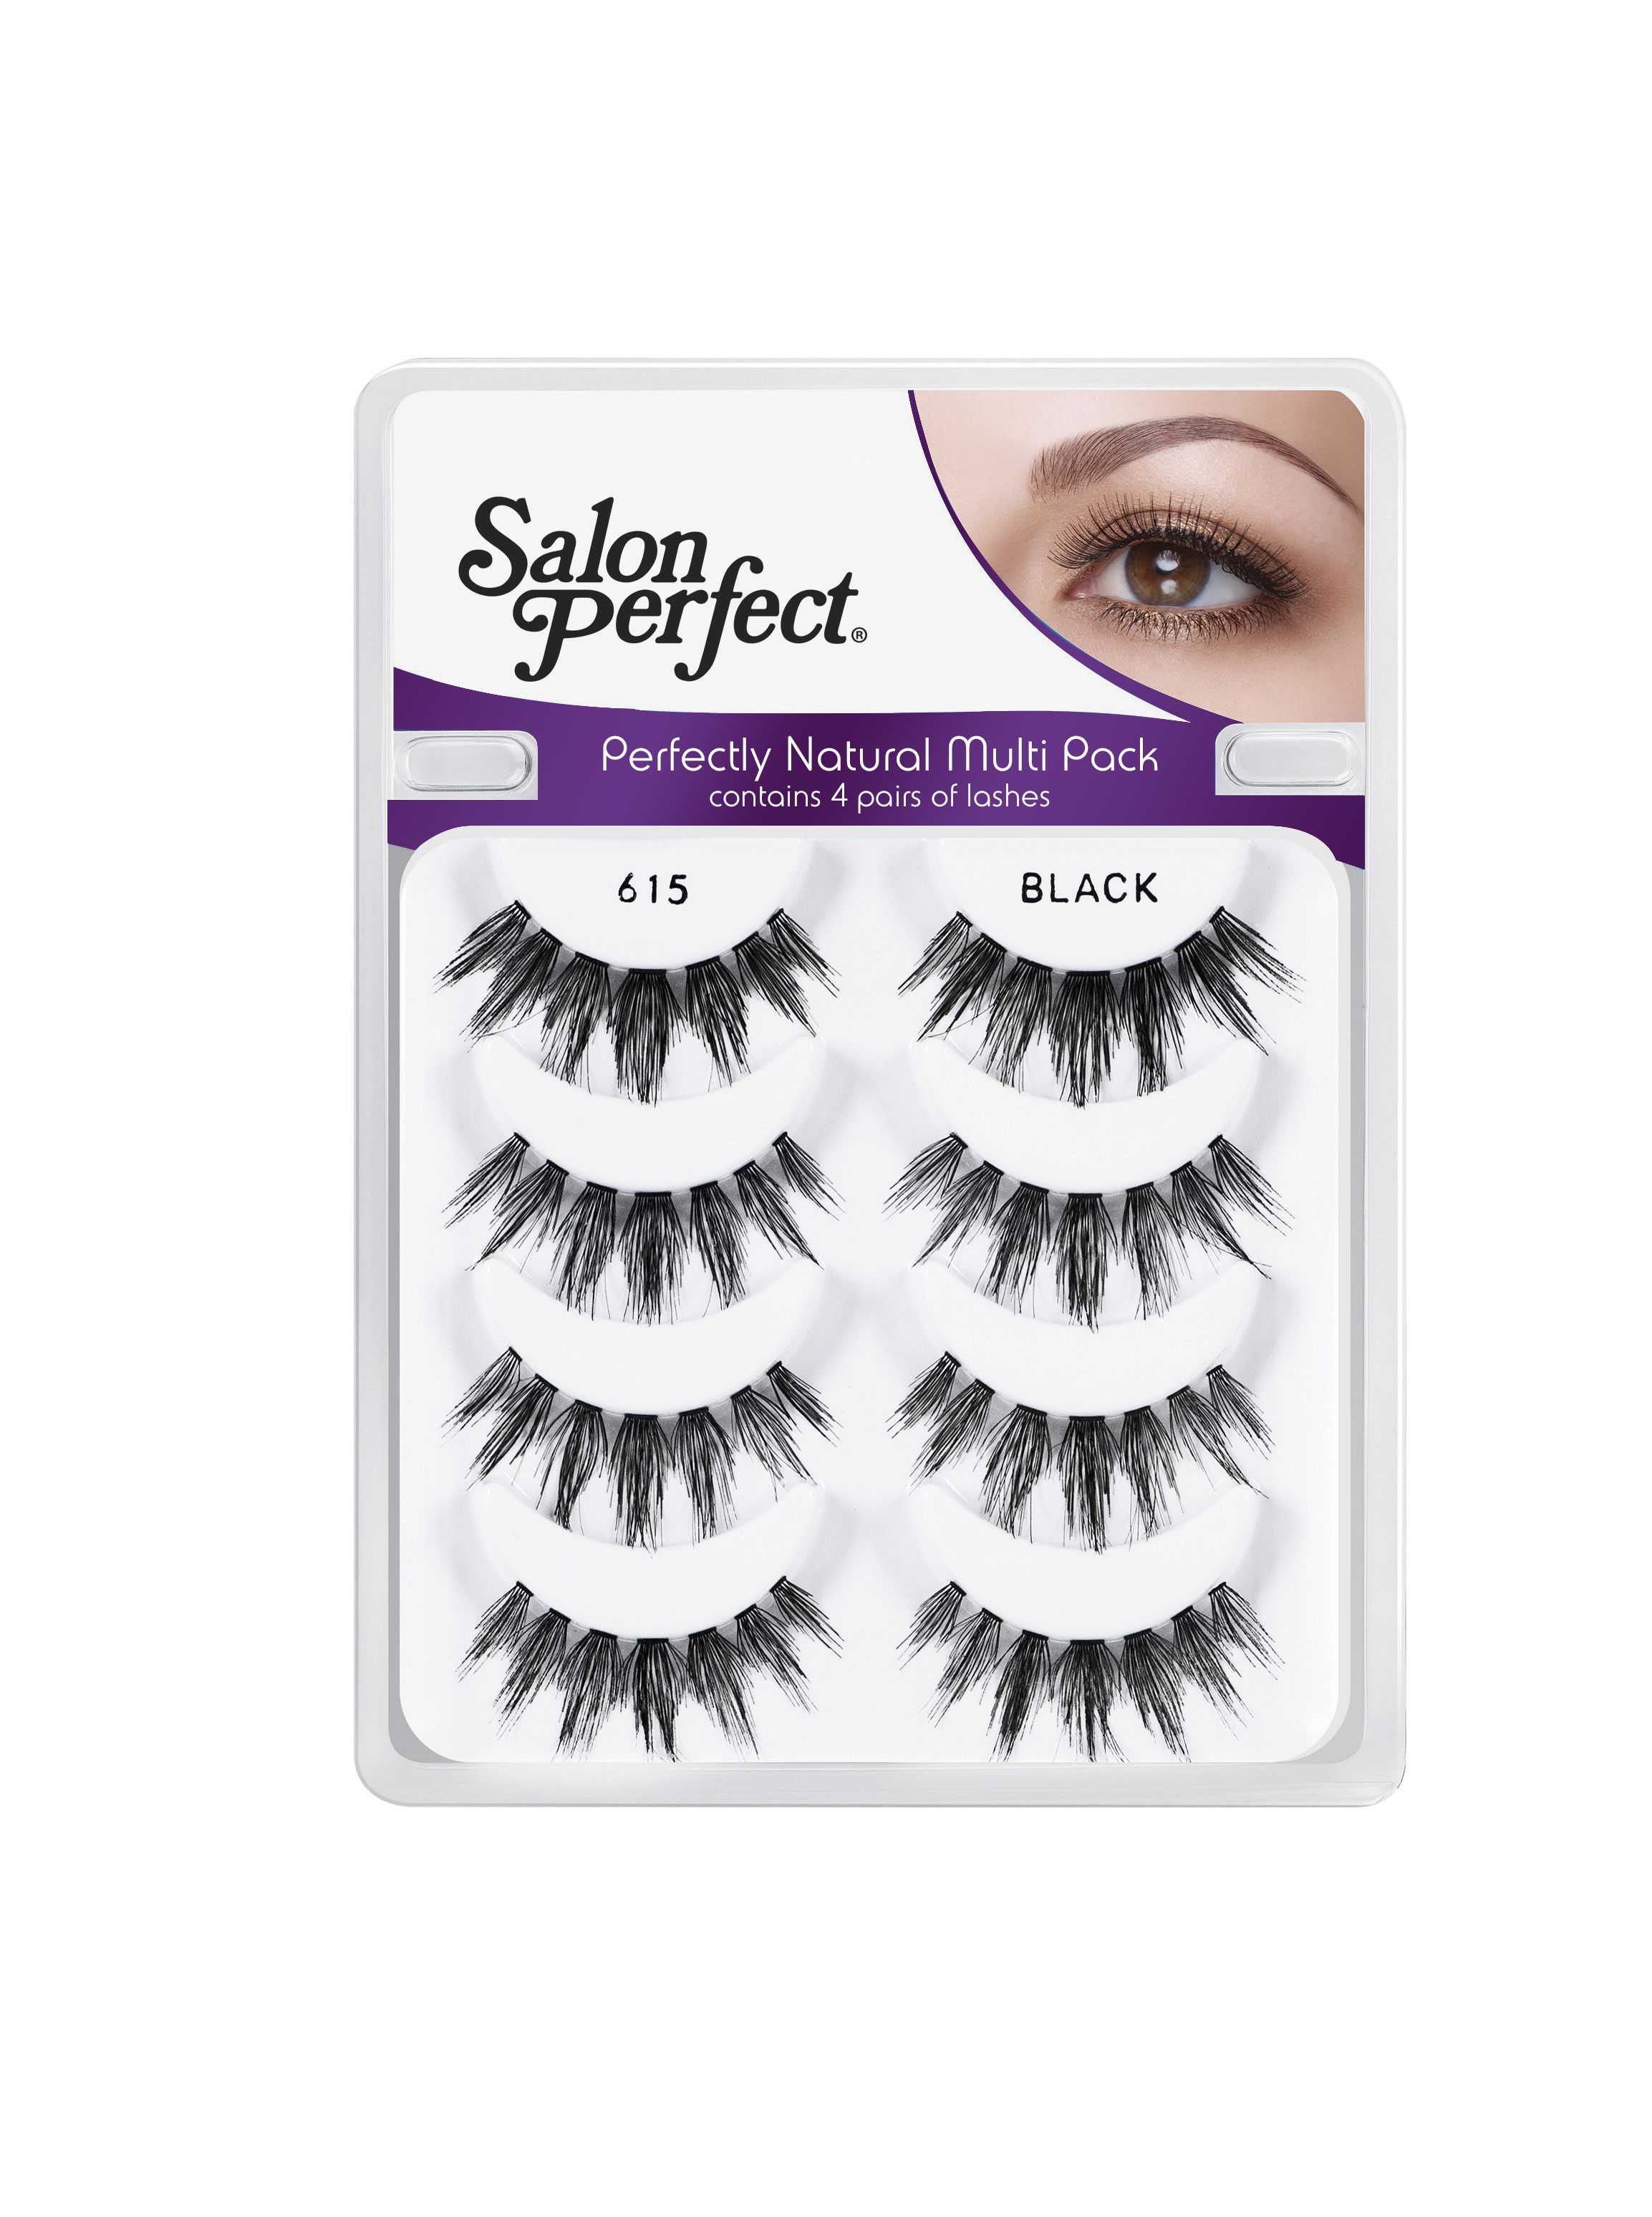 8e35c757ee9 Salon Perfect eyelashes in 615 are my ultimate favorite lashes! But they  are ALWAYS sold